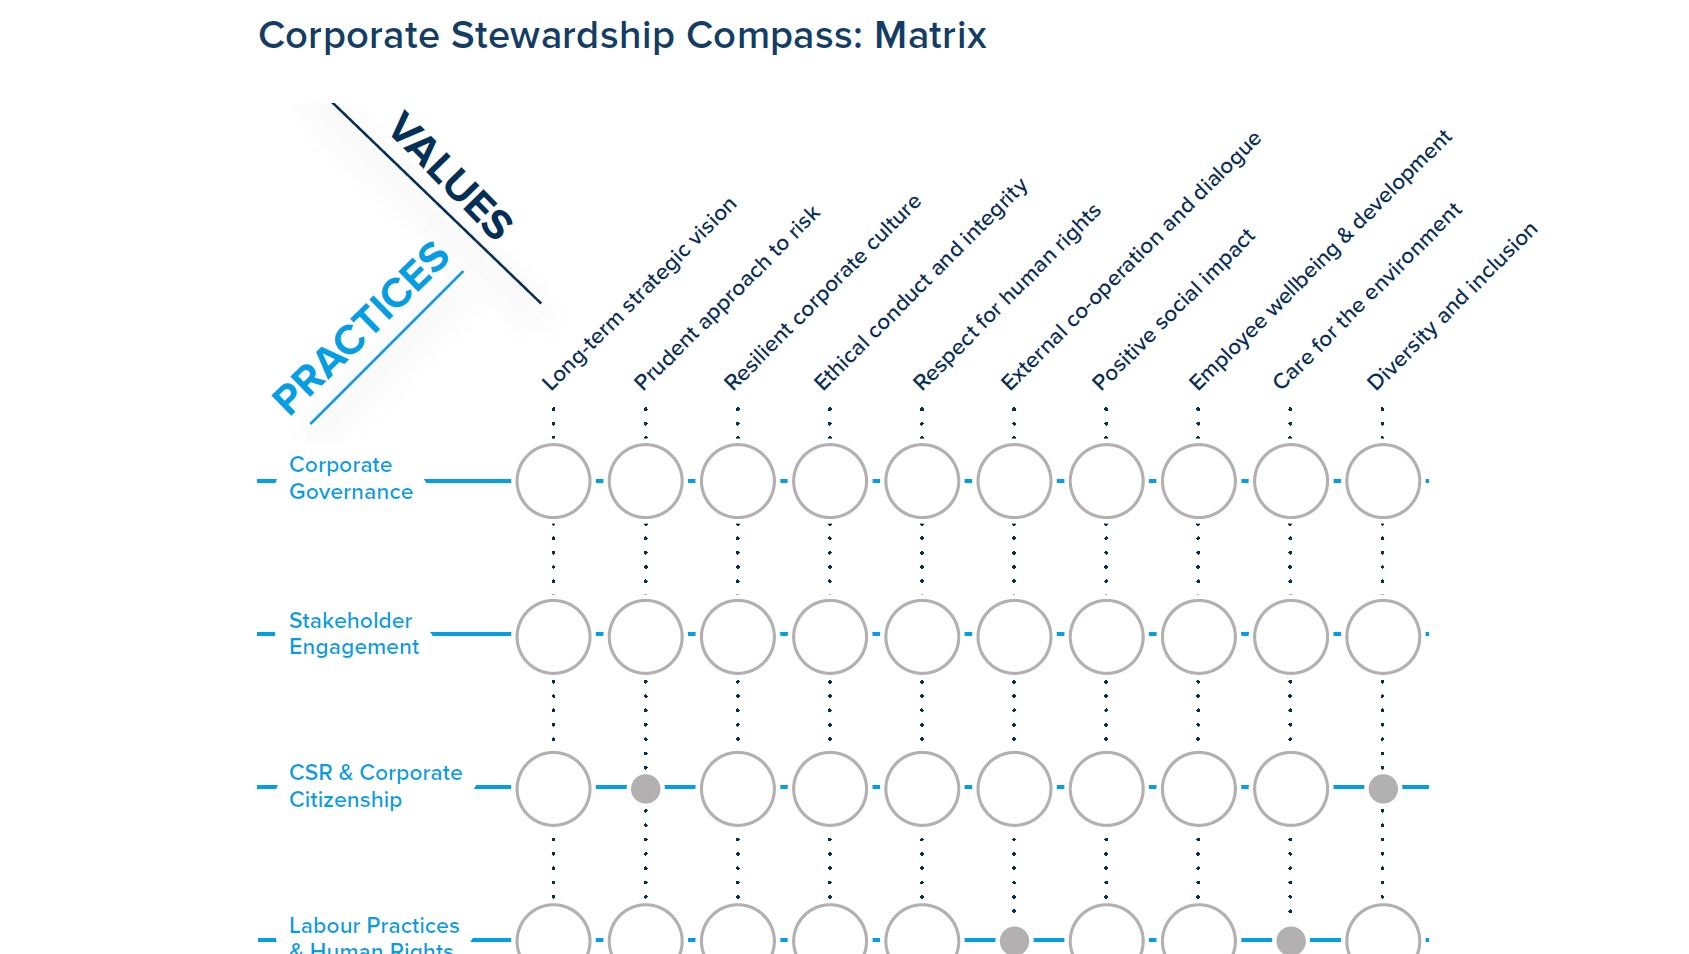 Detail of the Corporate Stewardship Compass